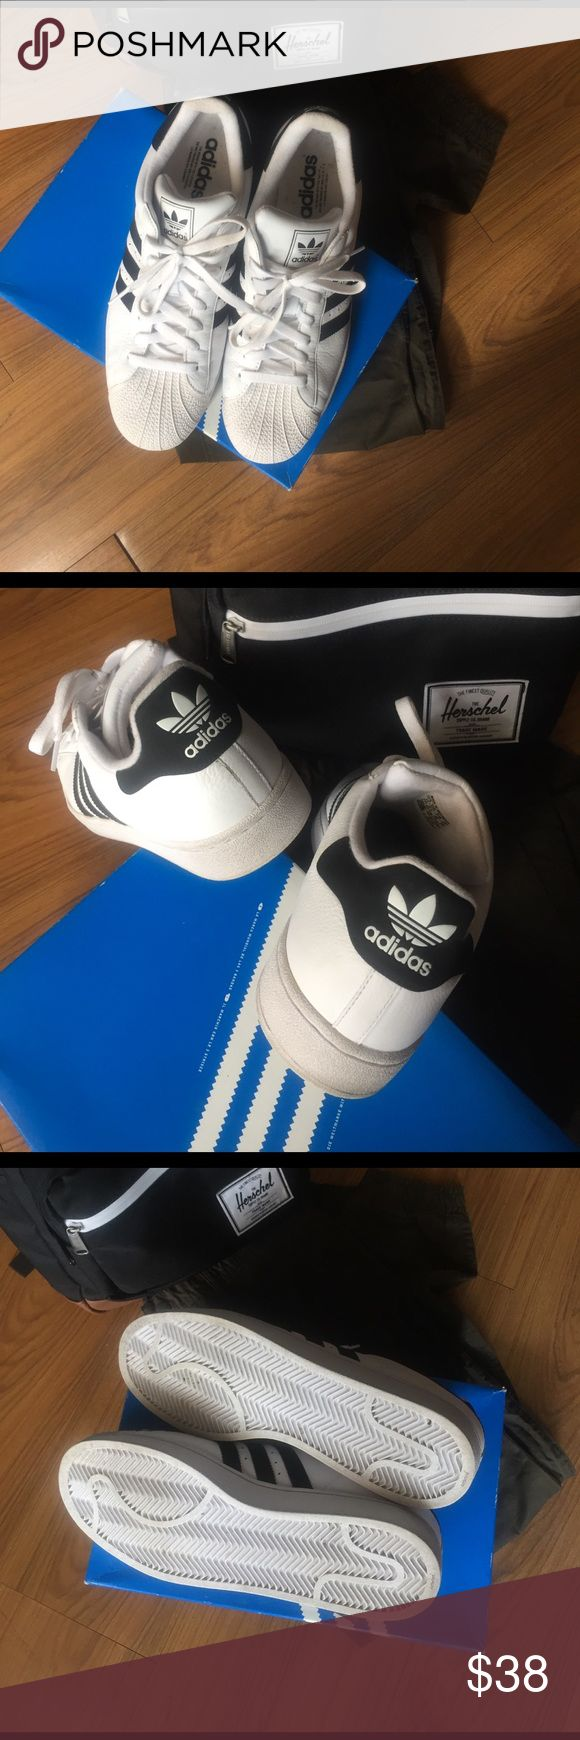 Adidas Originals Superstar II Only worn twice, these classics are in excellent used condition! Will ship in original box! Adidas Shoes Sneakers